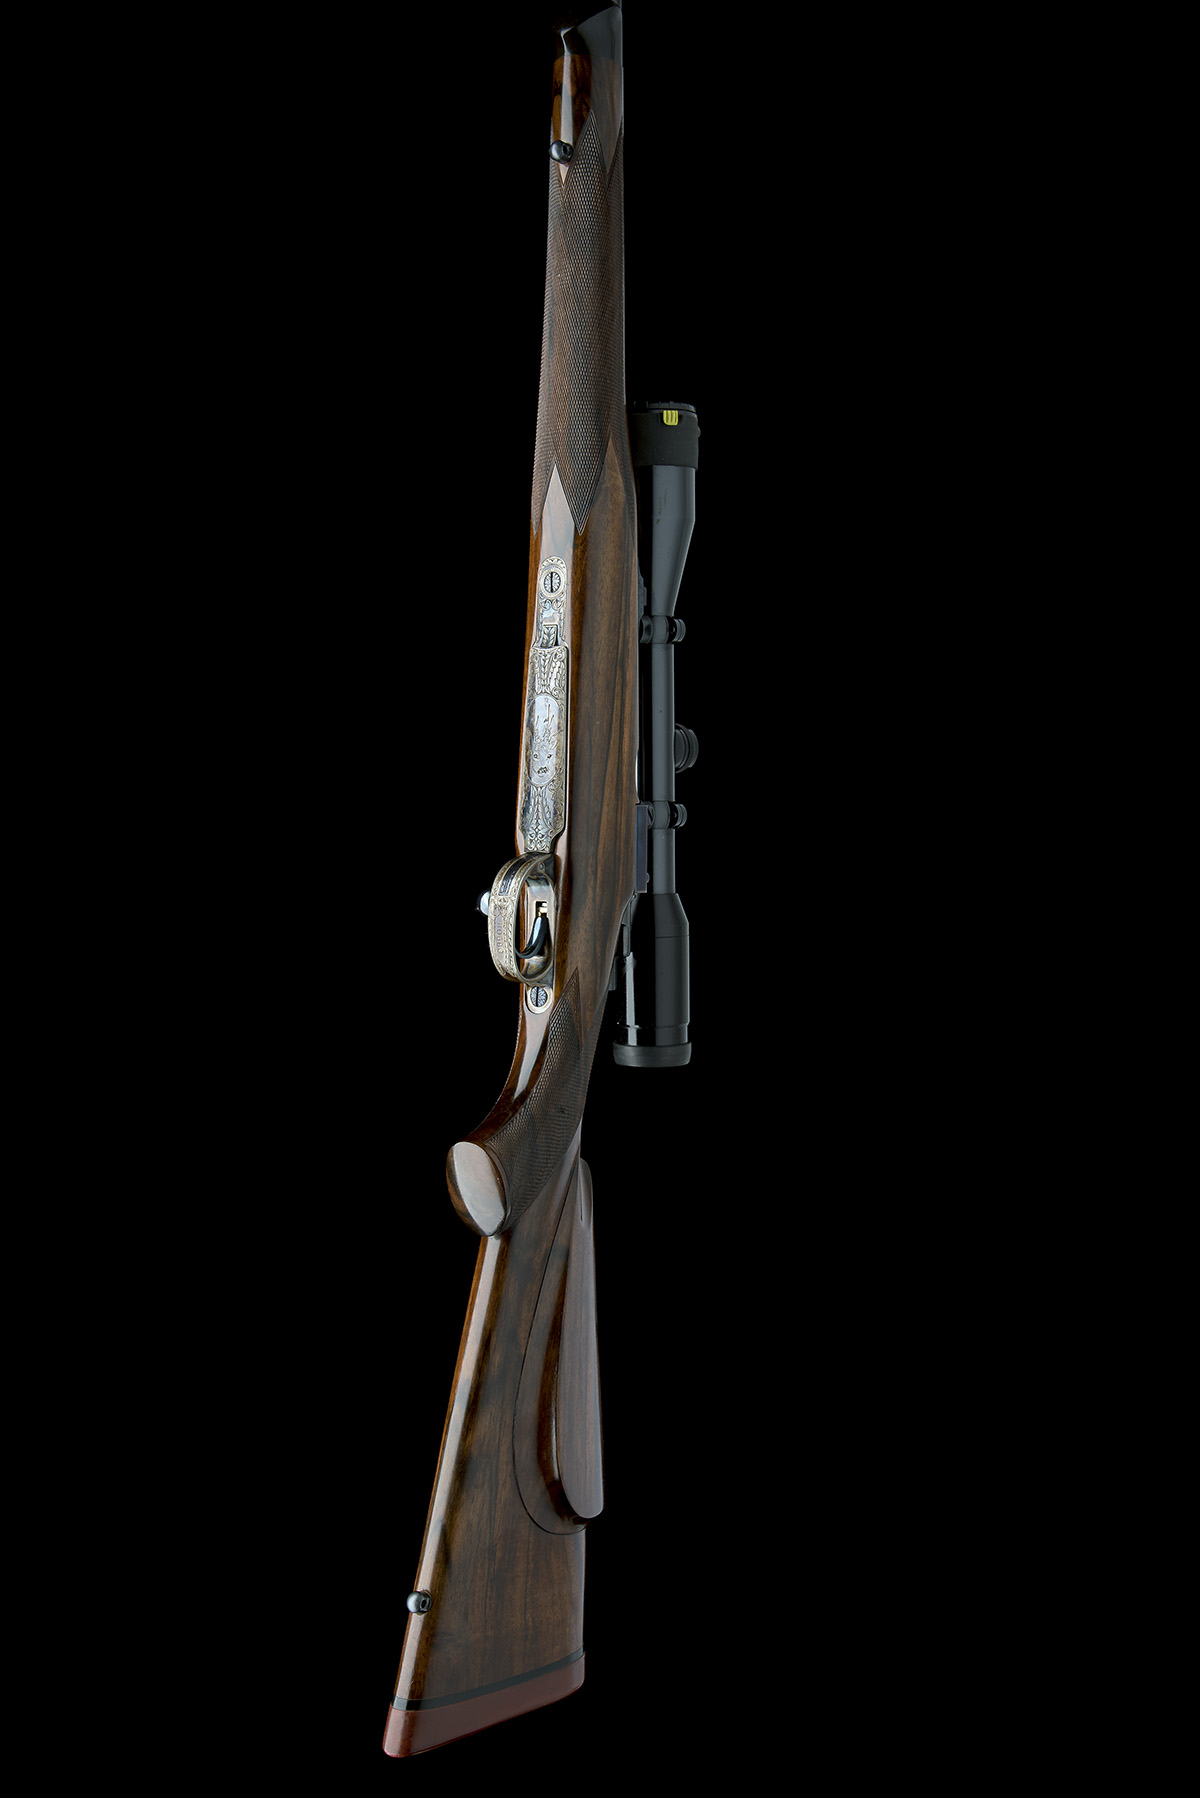 ROY MARTIN A .243 WIN. BOLT-MAGAZINE SPORTING RIFLE, serial no. H0680, circa 1986, 21in. unsighted - Image 9 of 9